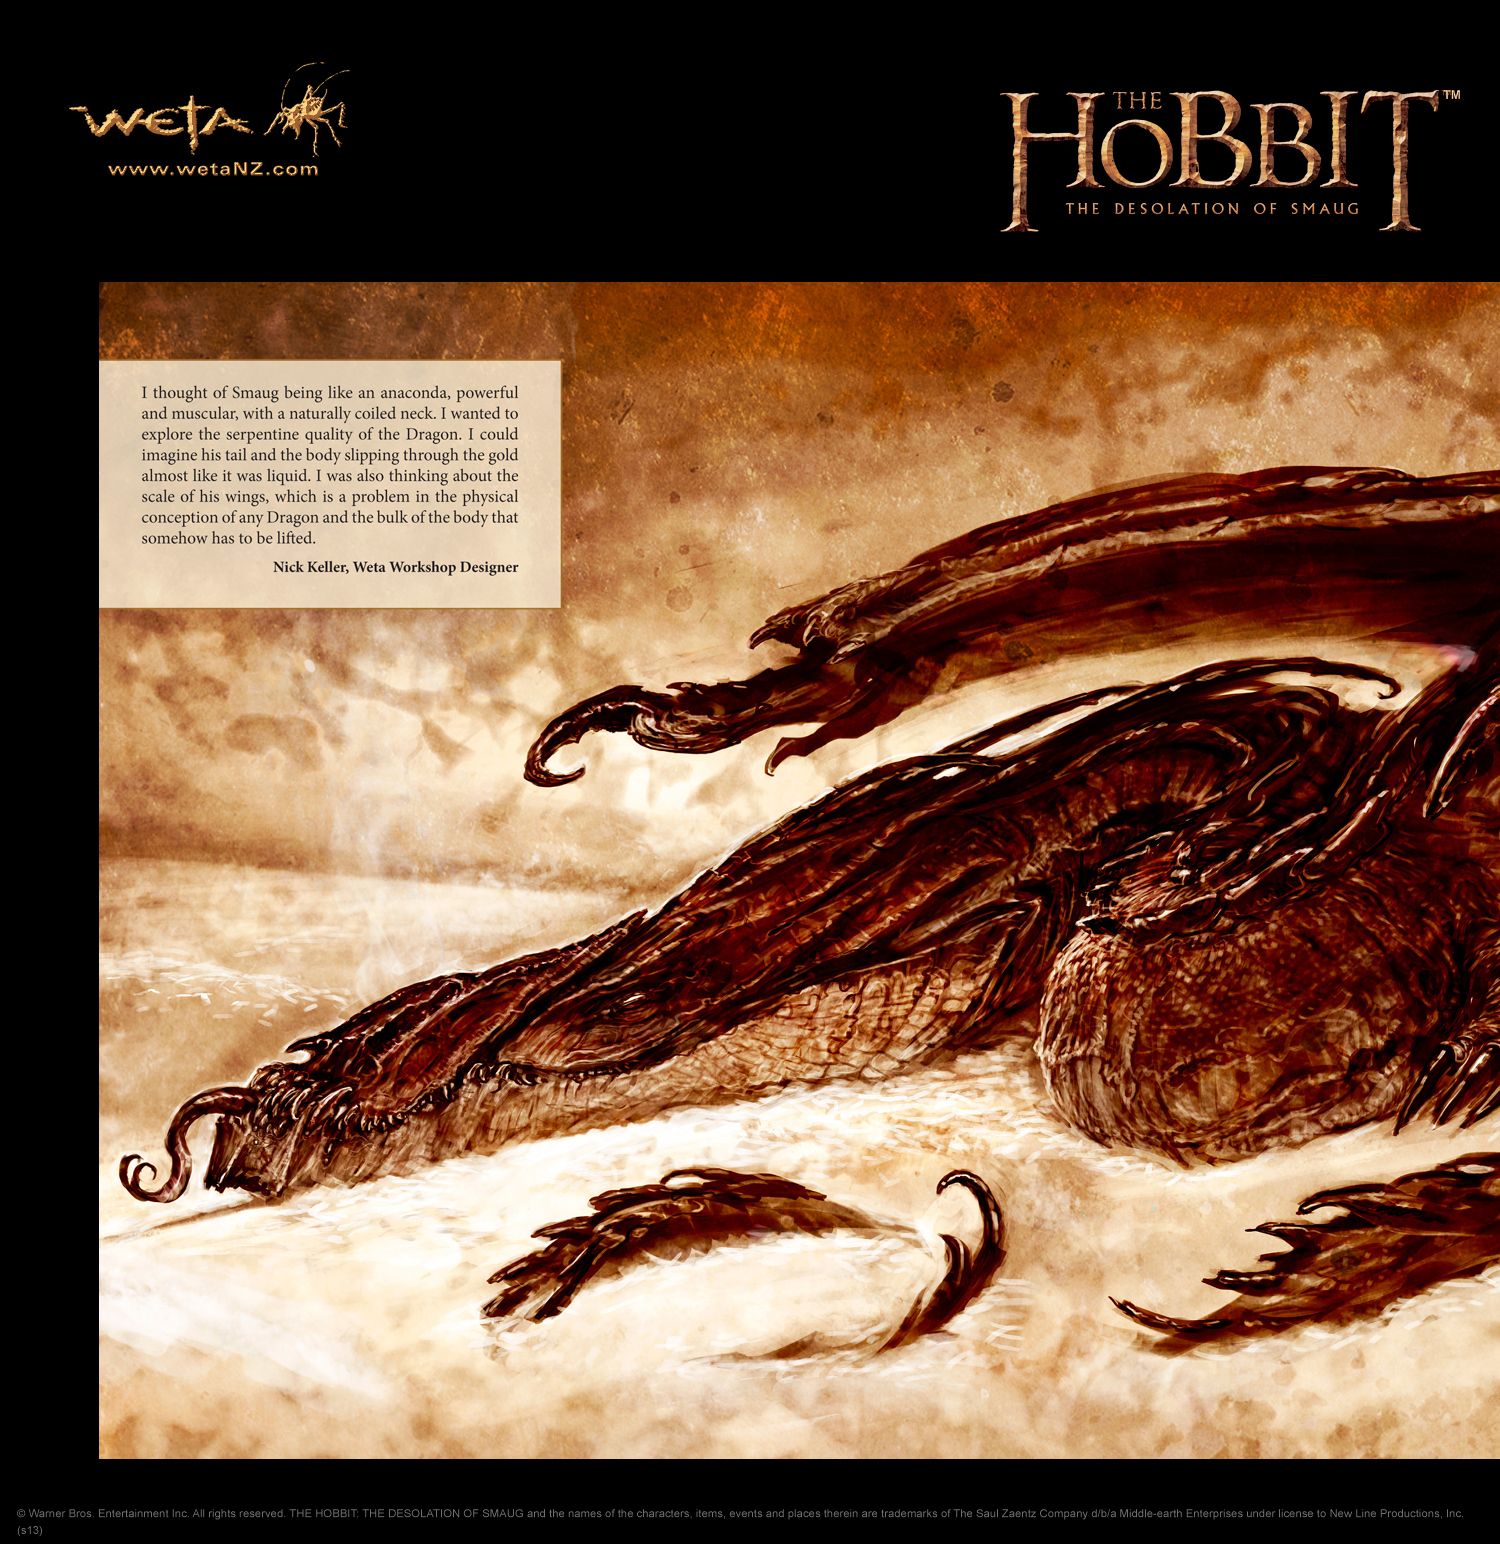 image smaug concept artjpg the one wiki to rule them